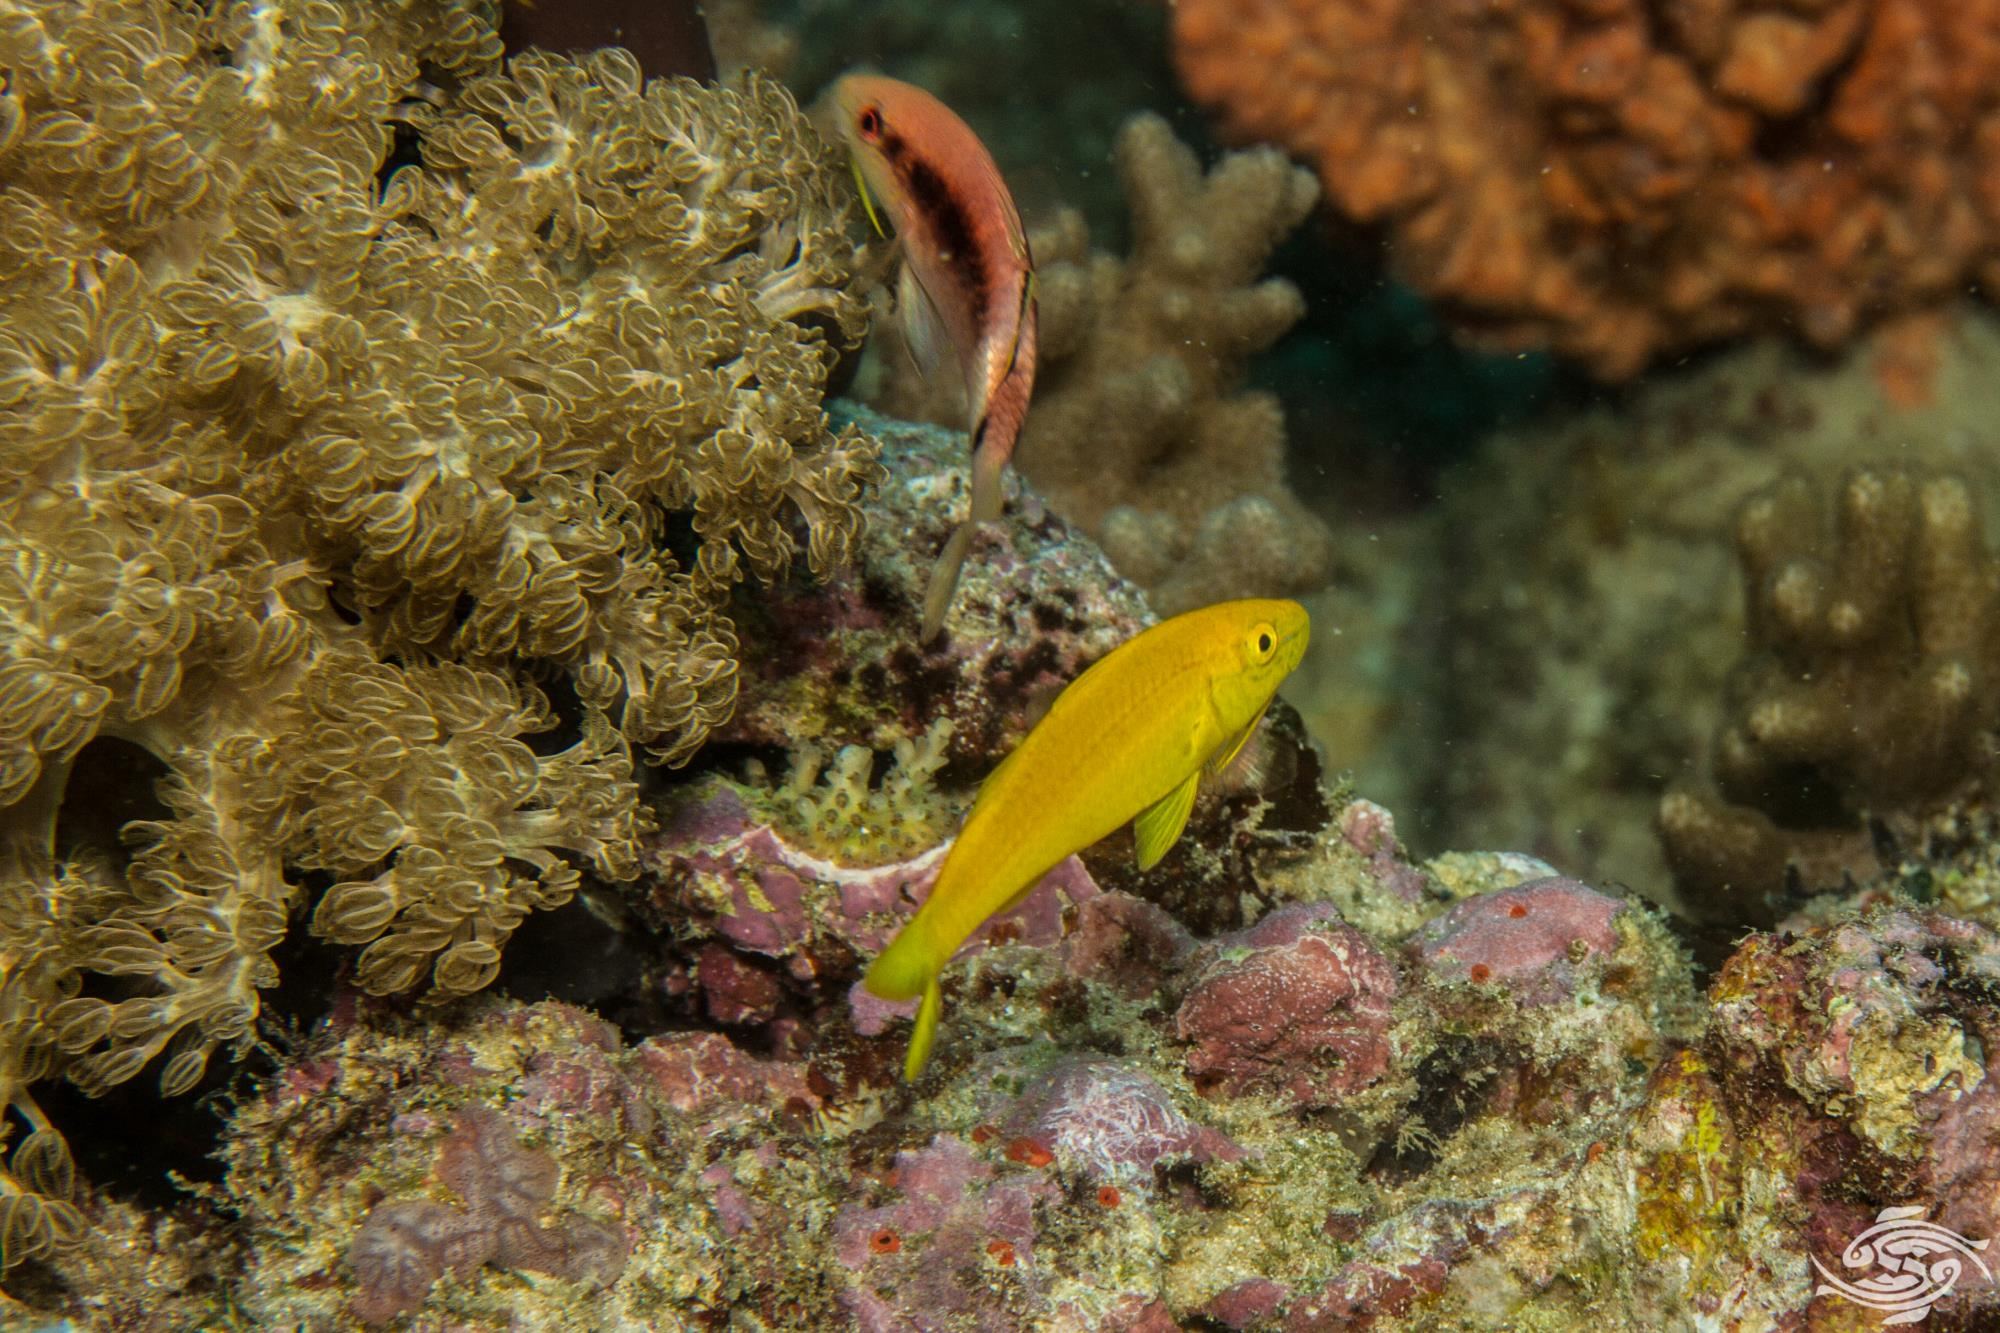 goldsaddle goatfish (Parupeneus cyclostomus)or yellowsaddle goatfish